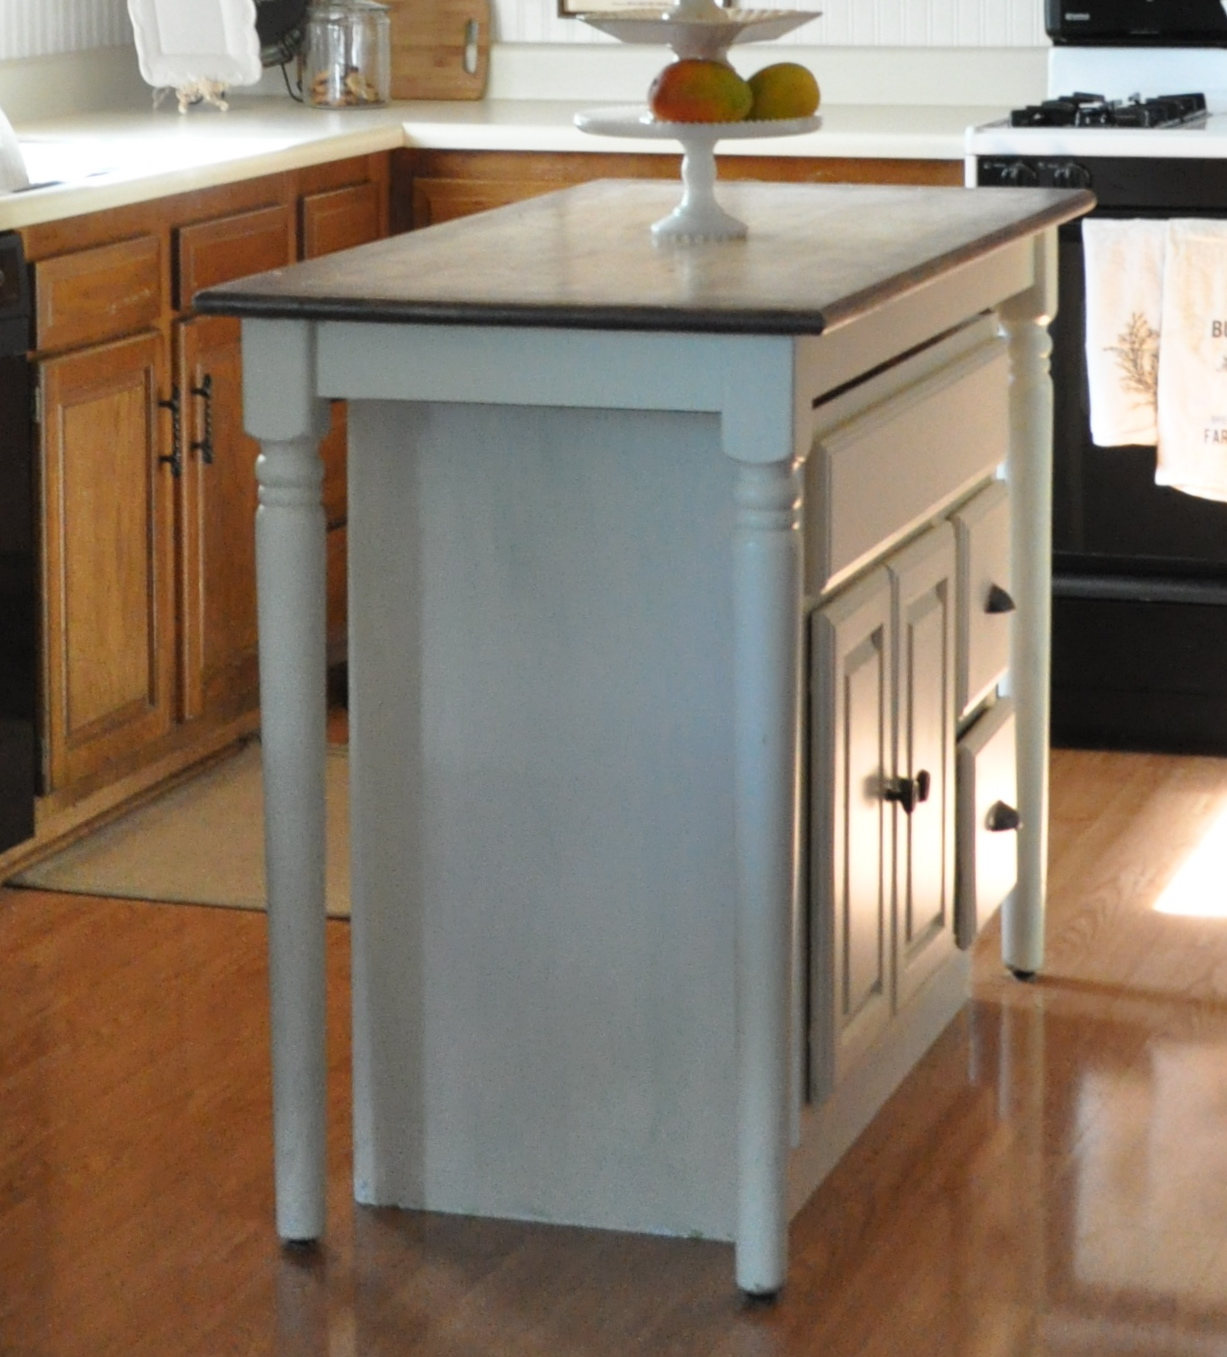 building a kitchen island. - jennifer rizzo